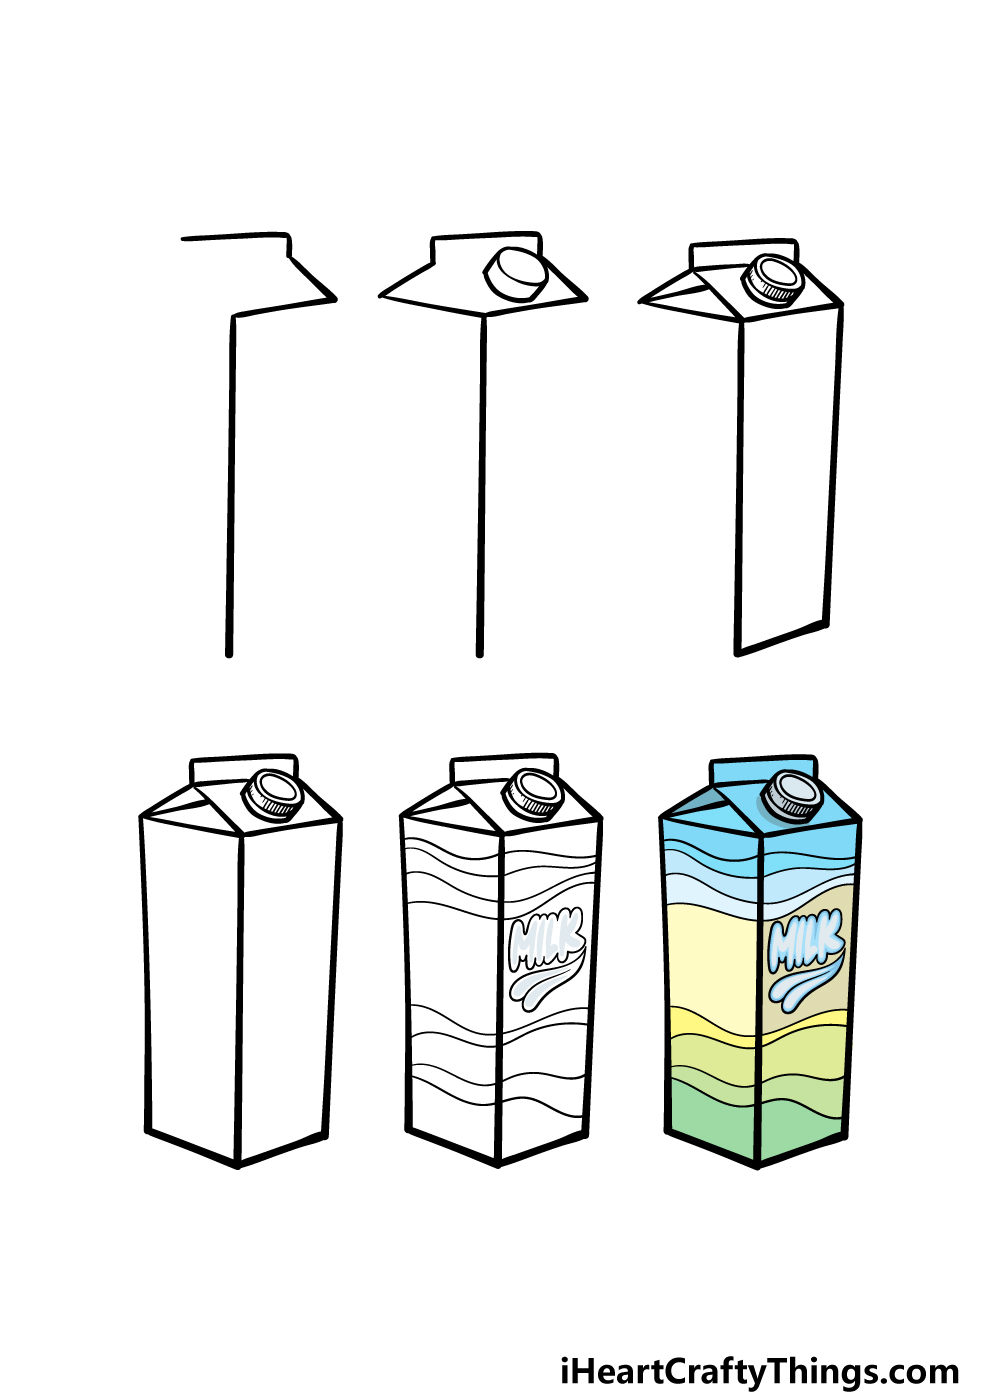 how to draw a milk carton in 6 steps